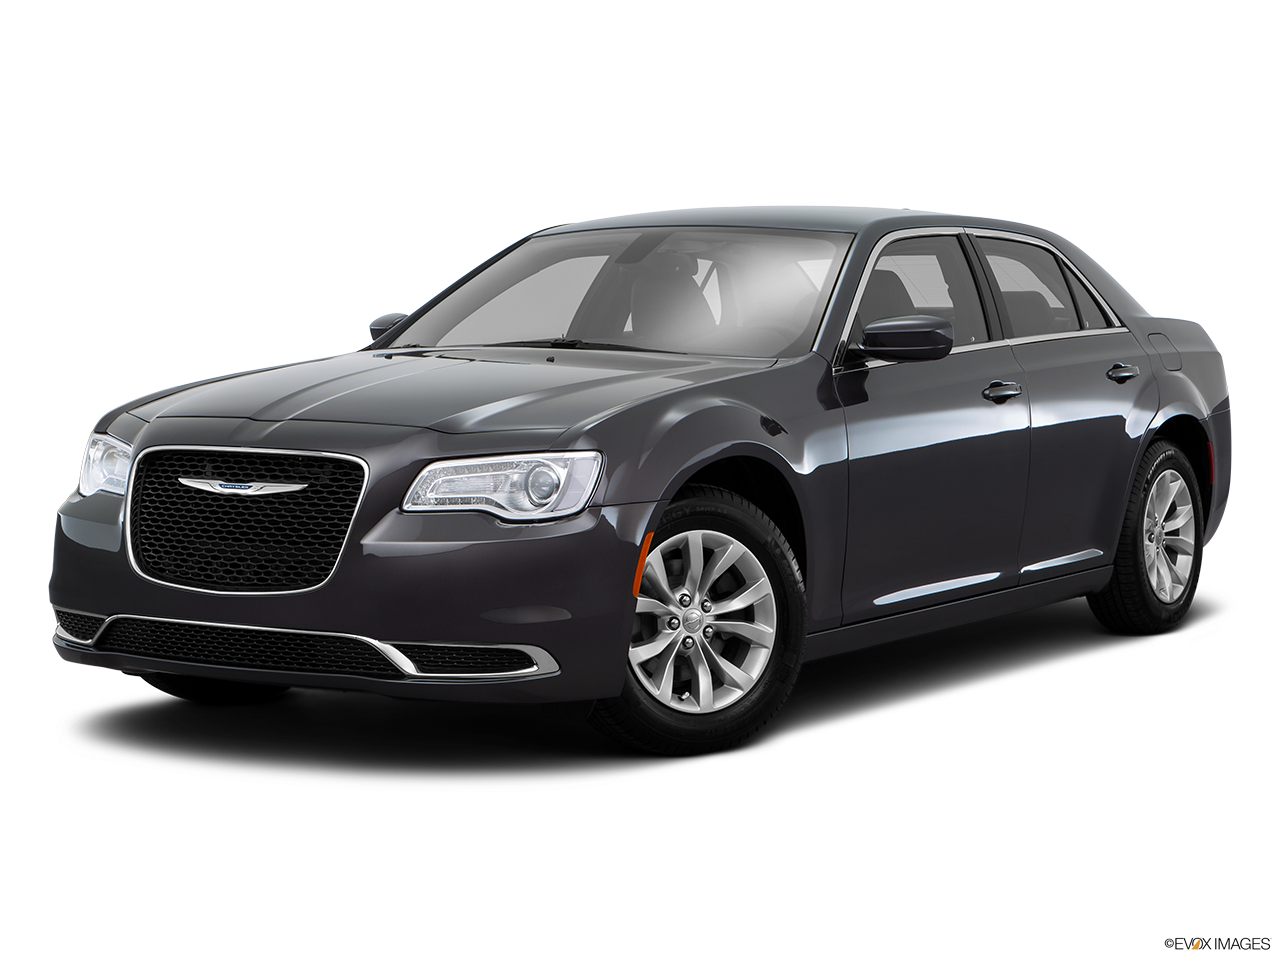 Test Drive A 2016 Chrysler 300 at Premier Chrysler in Tracy